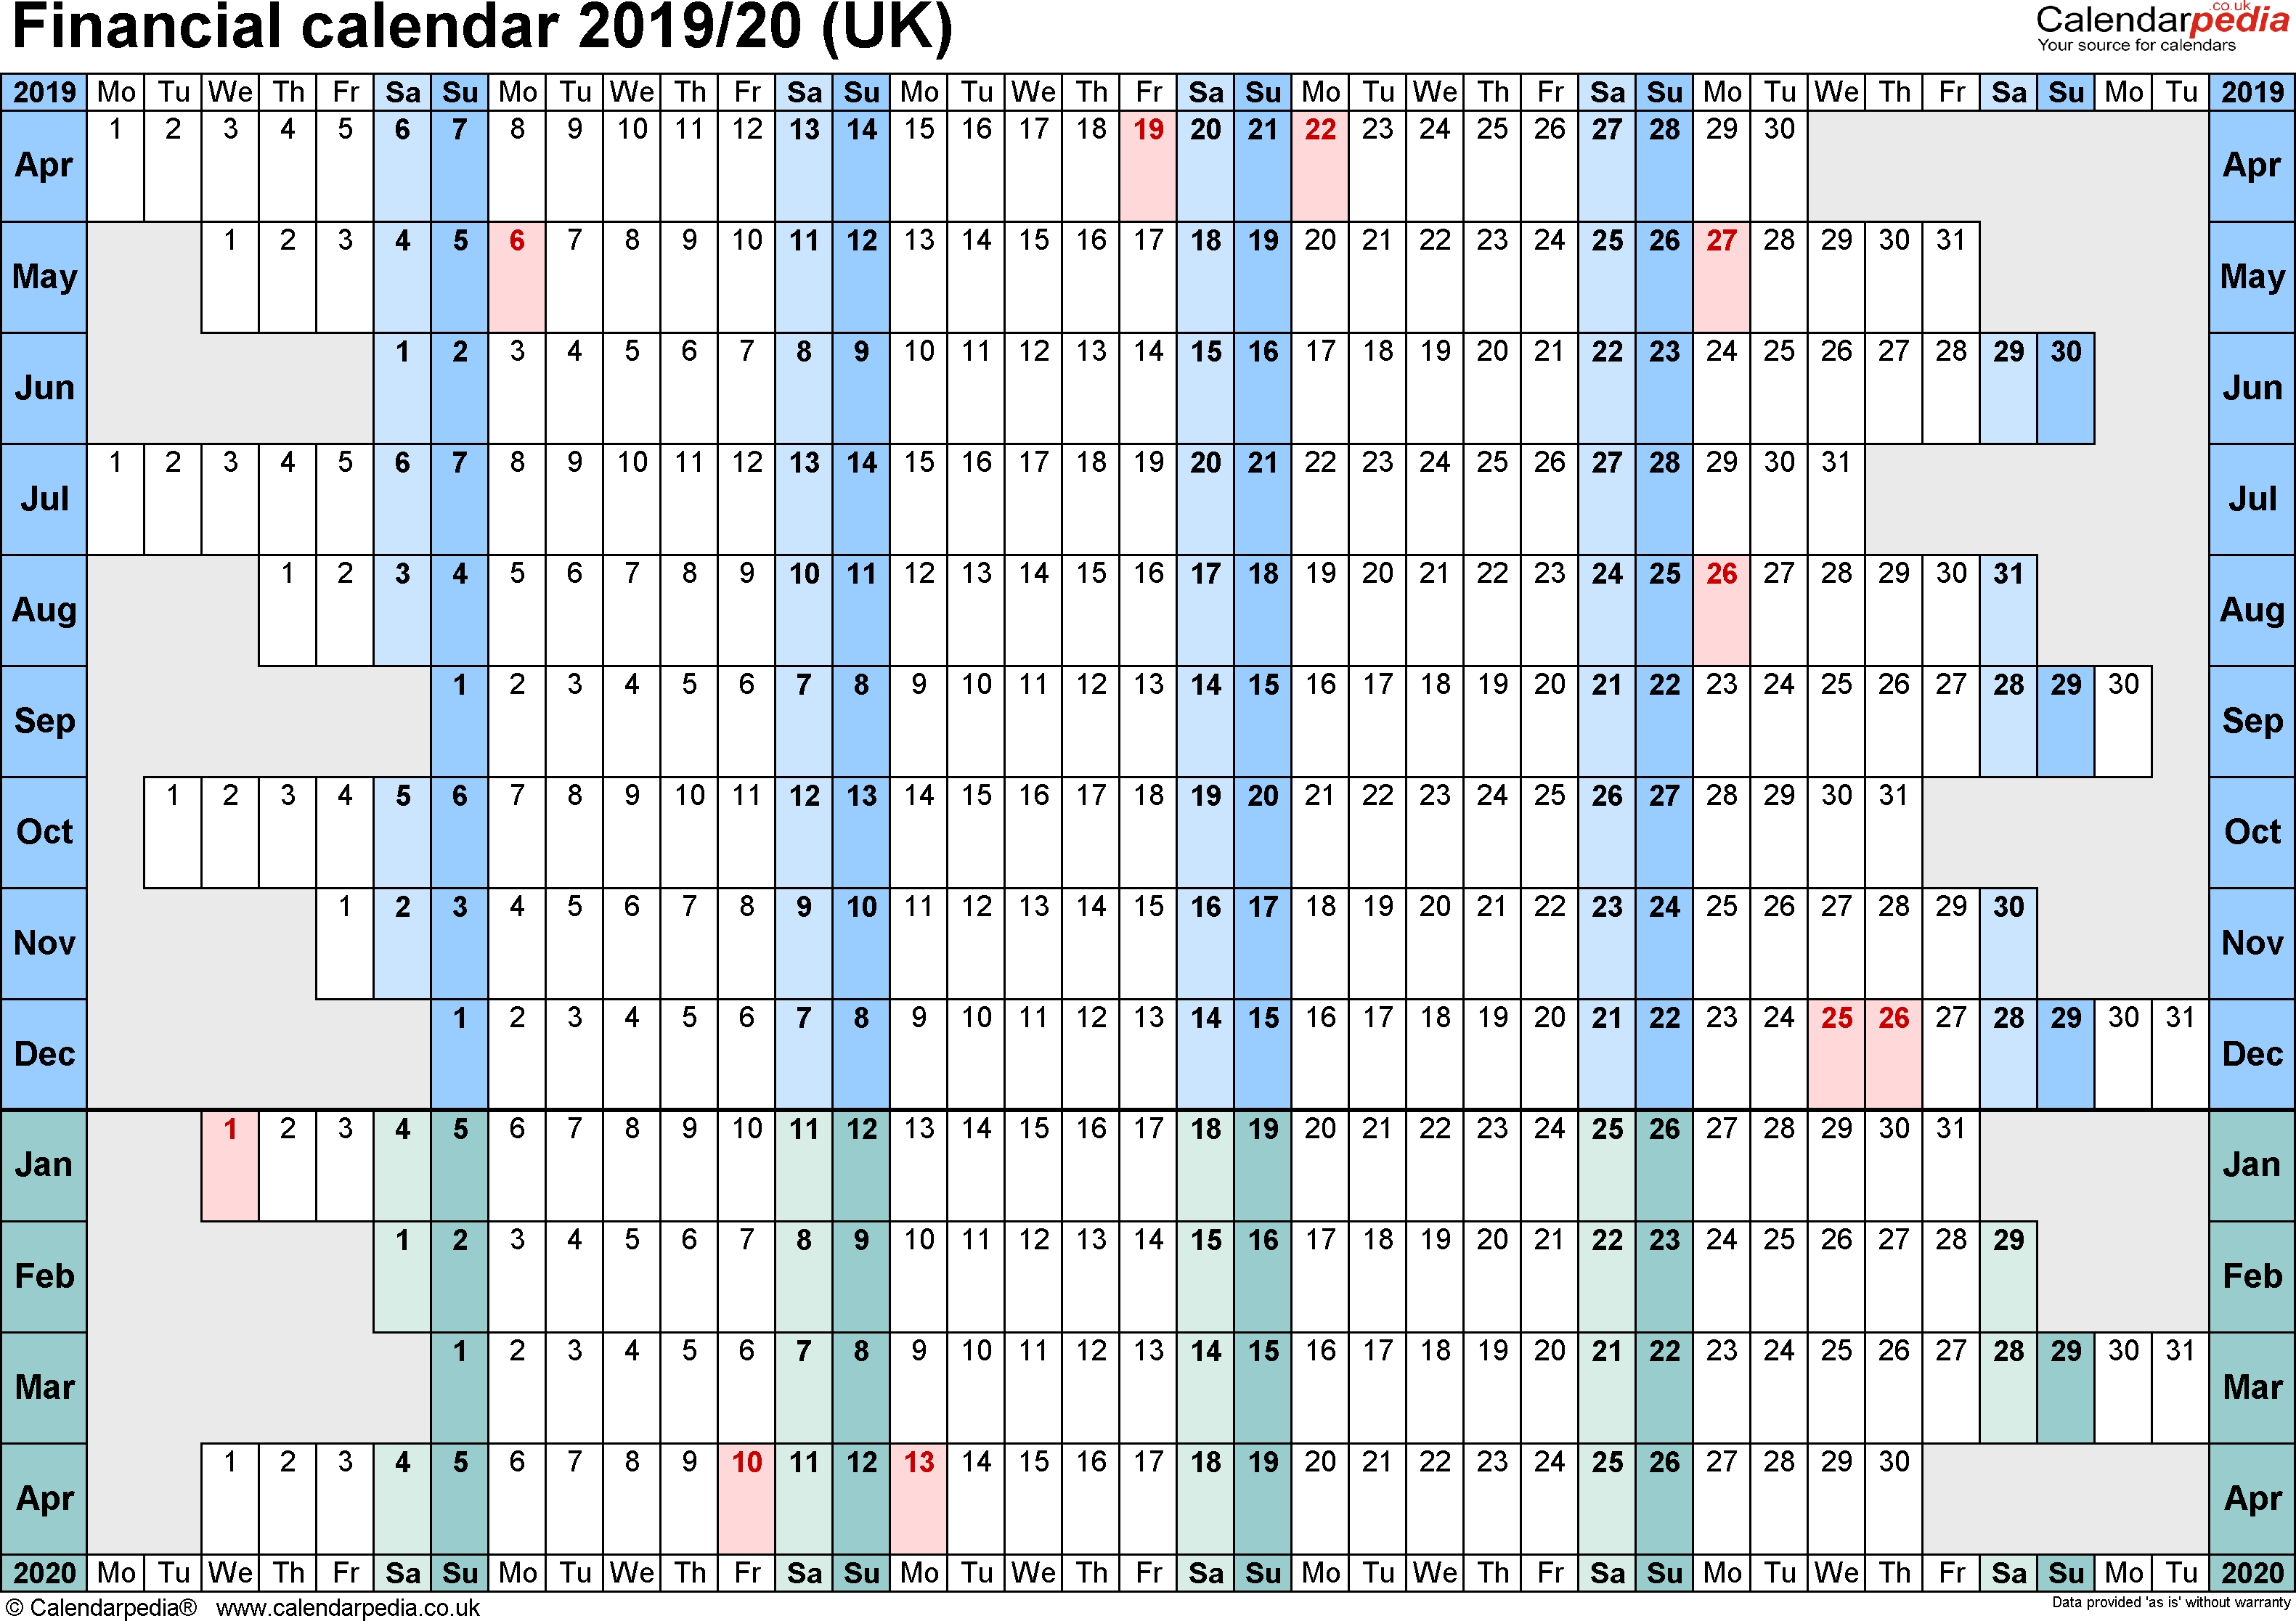 Financial Calendars 2019/20 (Uk) In Pdf Format with Tax Week Calendars 2019/2020